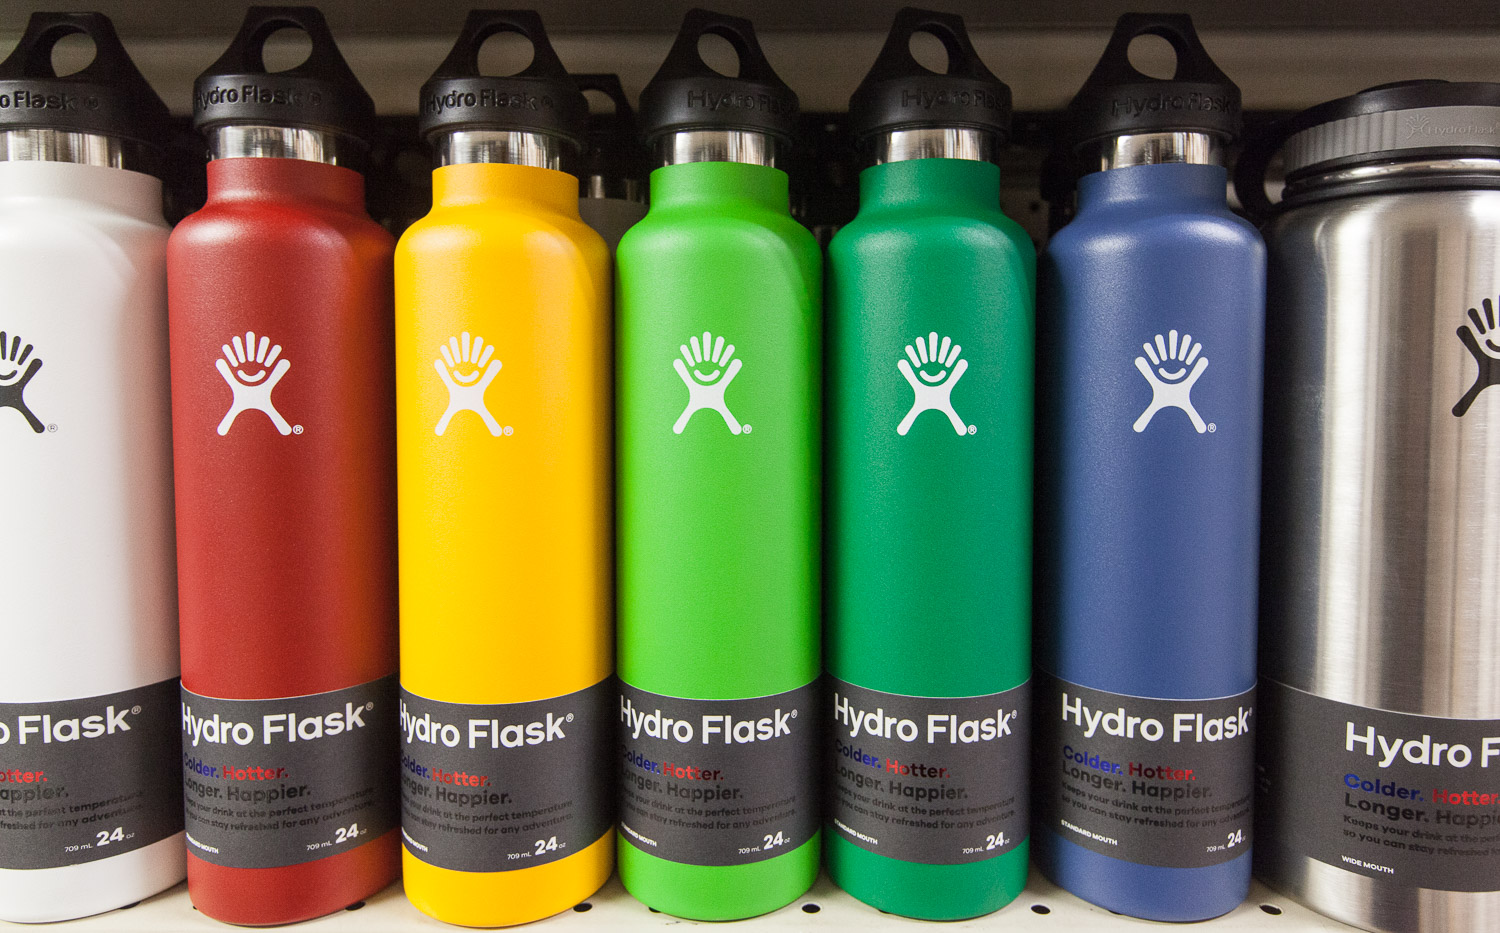 hydro-flask-assortment-mana-foods-gifts-household-department